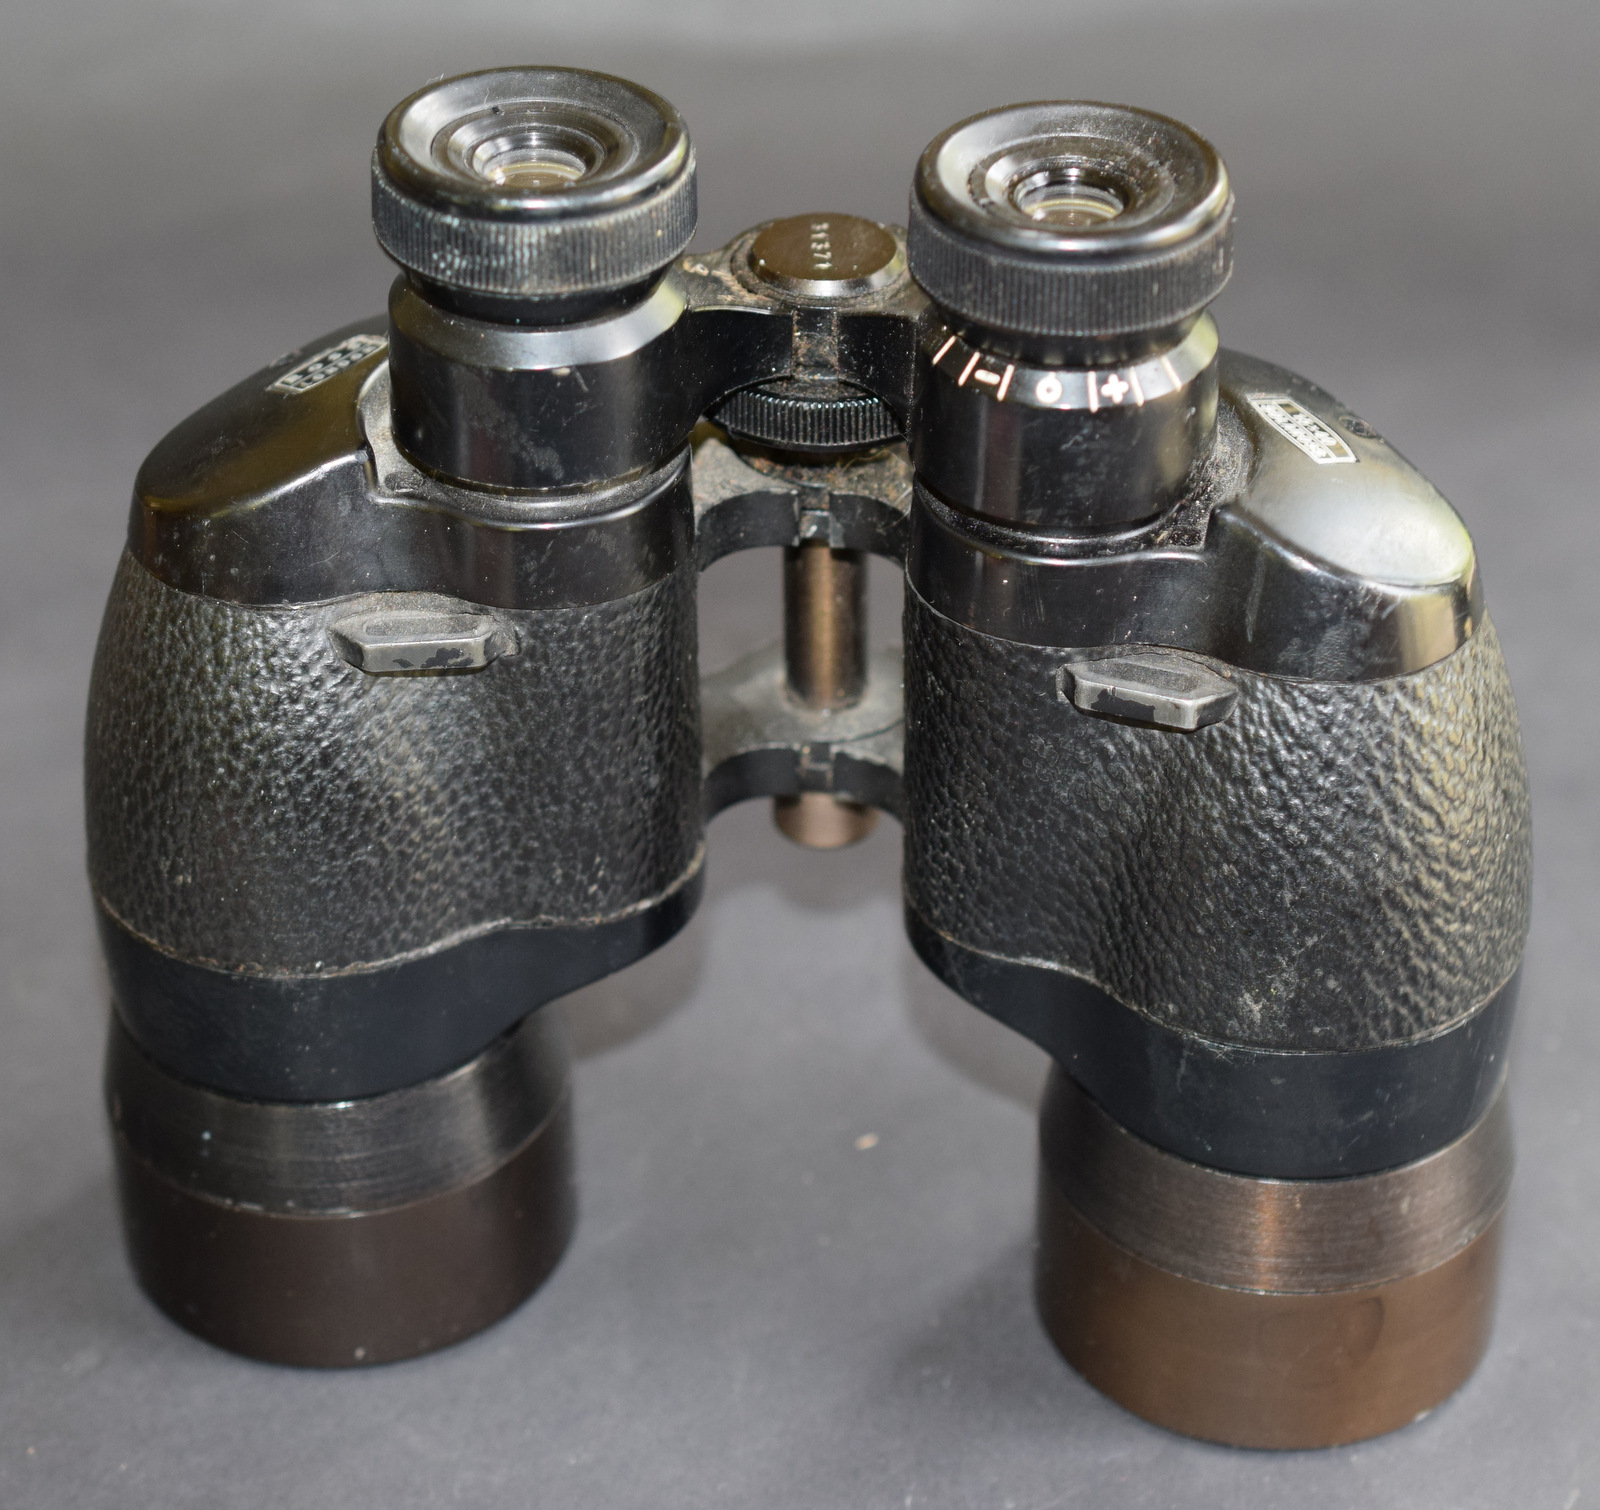 Lot 24 - Ross of London 15x40 Binoculars